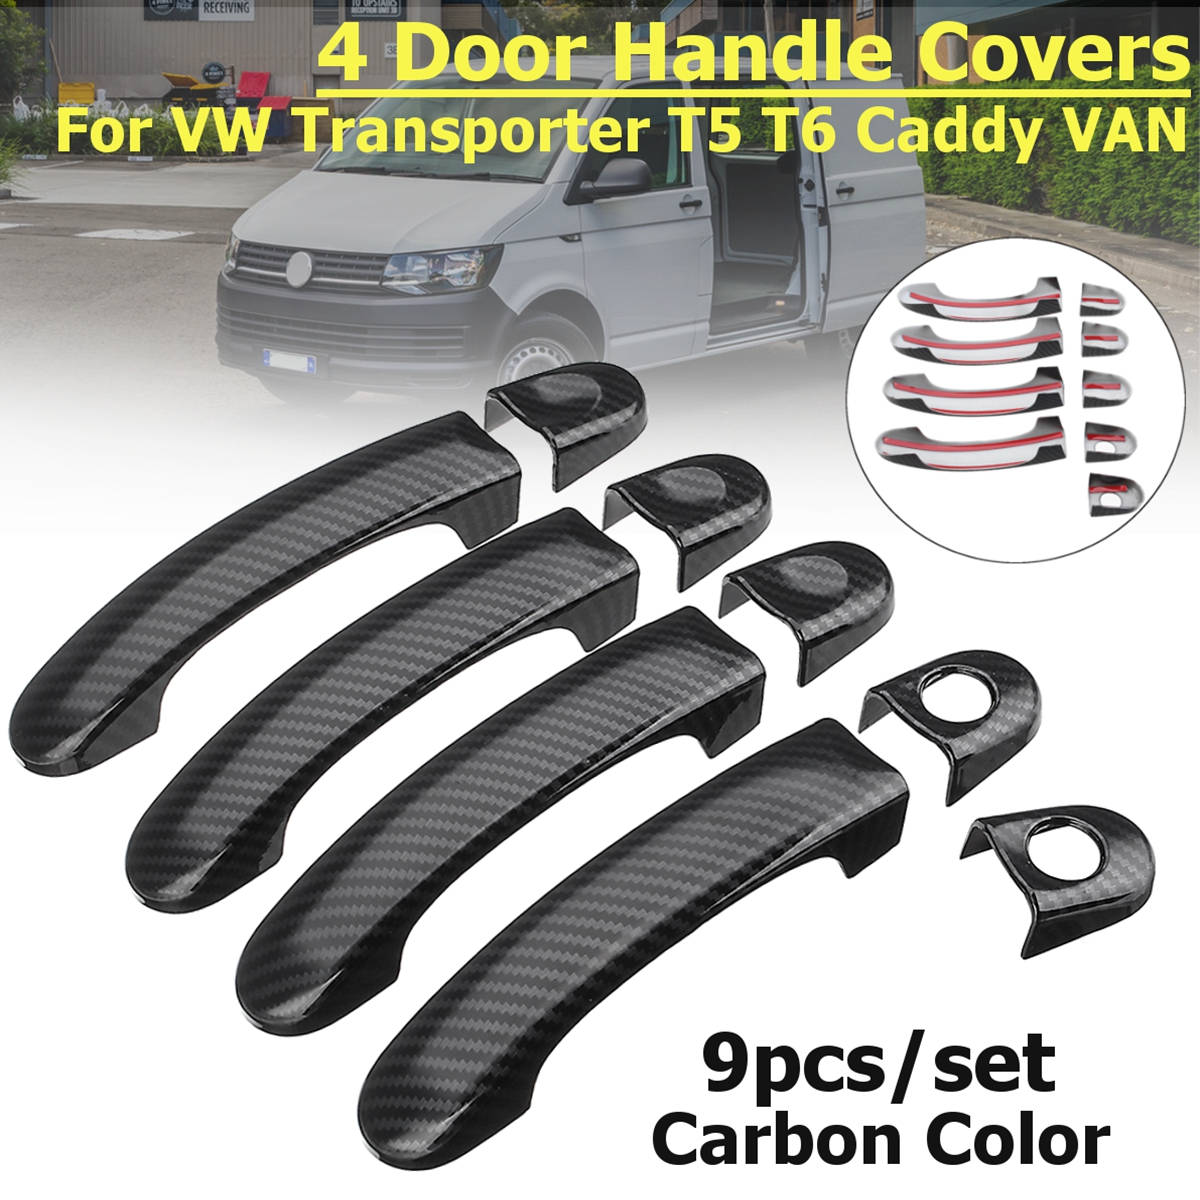 For VW T5 T5.1 T6 Transporter Gloss Black 3 Door Handle Covers Keyhole Caddy